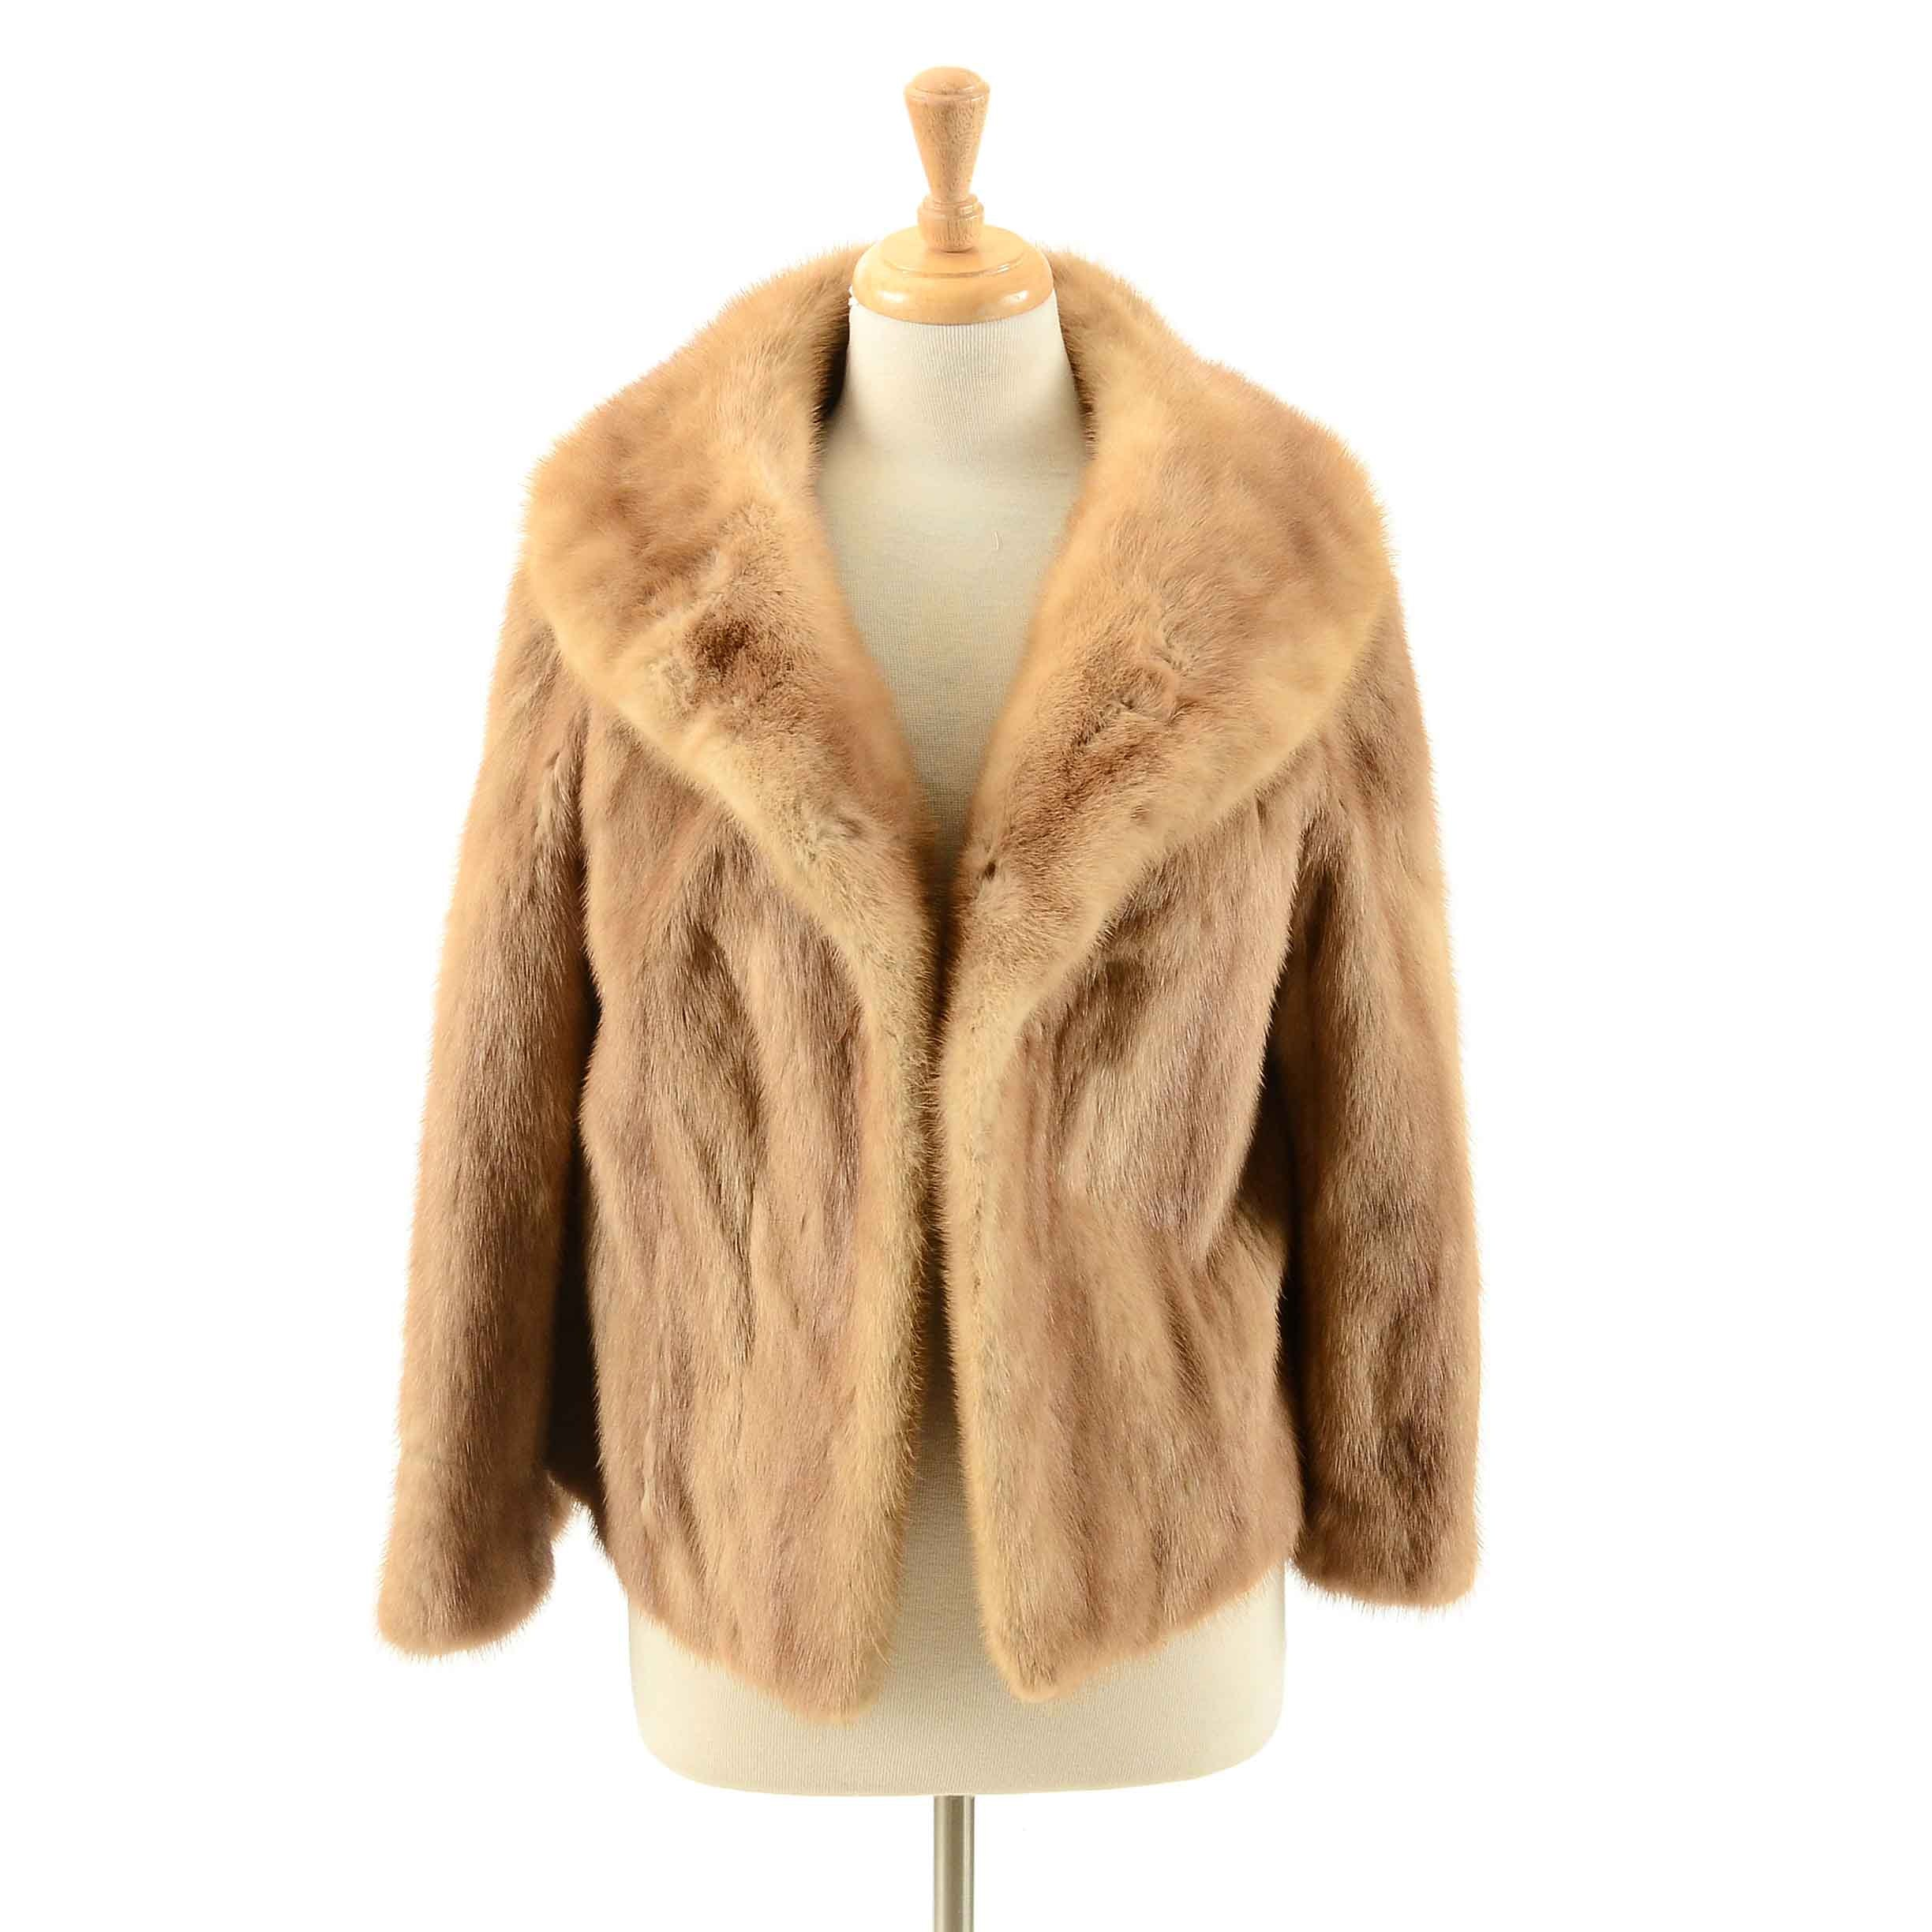 Vintage Autumn Haze Mink Fur Jacket